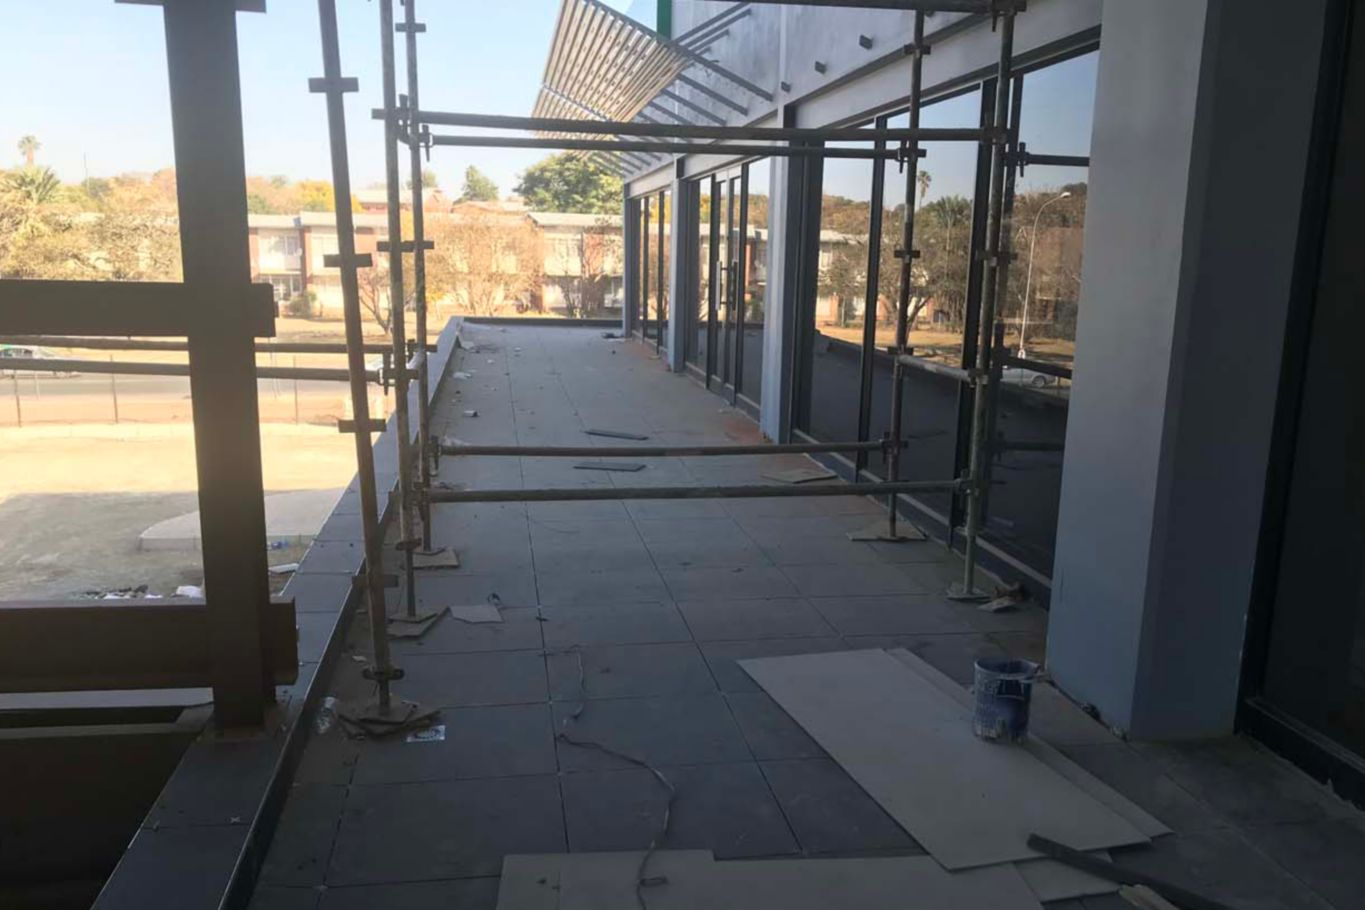 Sika's Tile Adhesive range covers floor and wall tile areas of The Square Shopping Mall in Ladysmith.